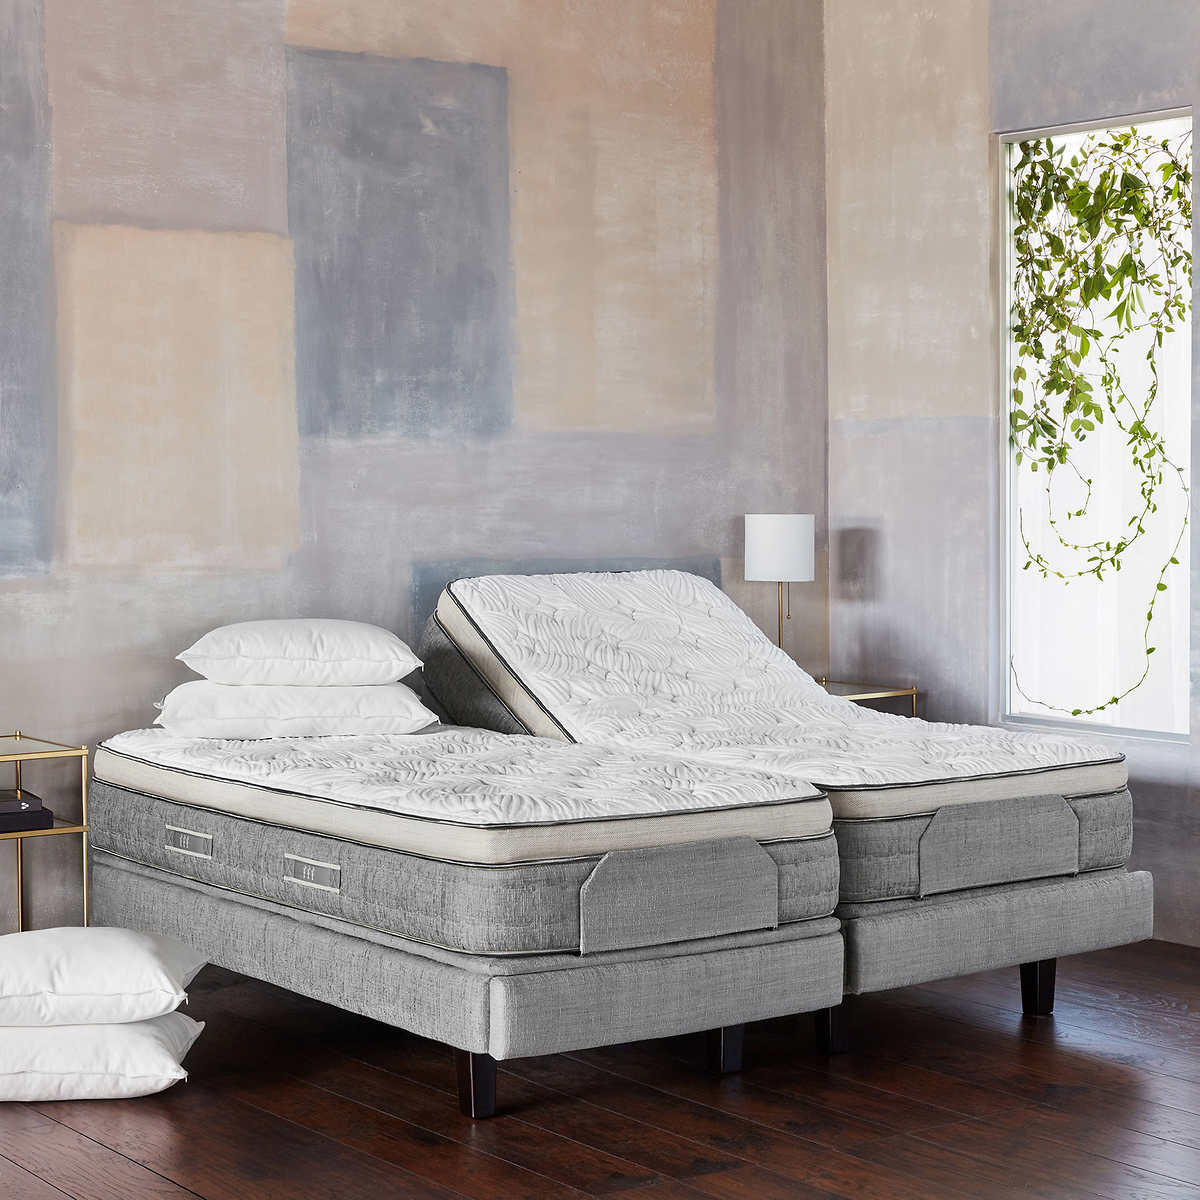 brentwood home cupertino cushion firm split king with adjustable base - Split King Adjustable Bed Frame